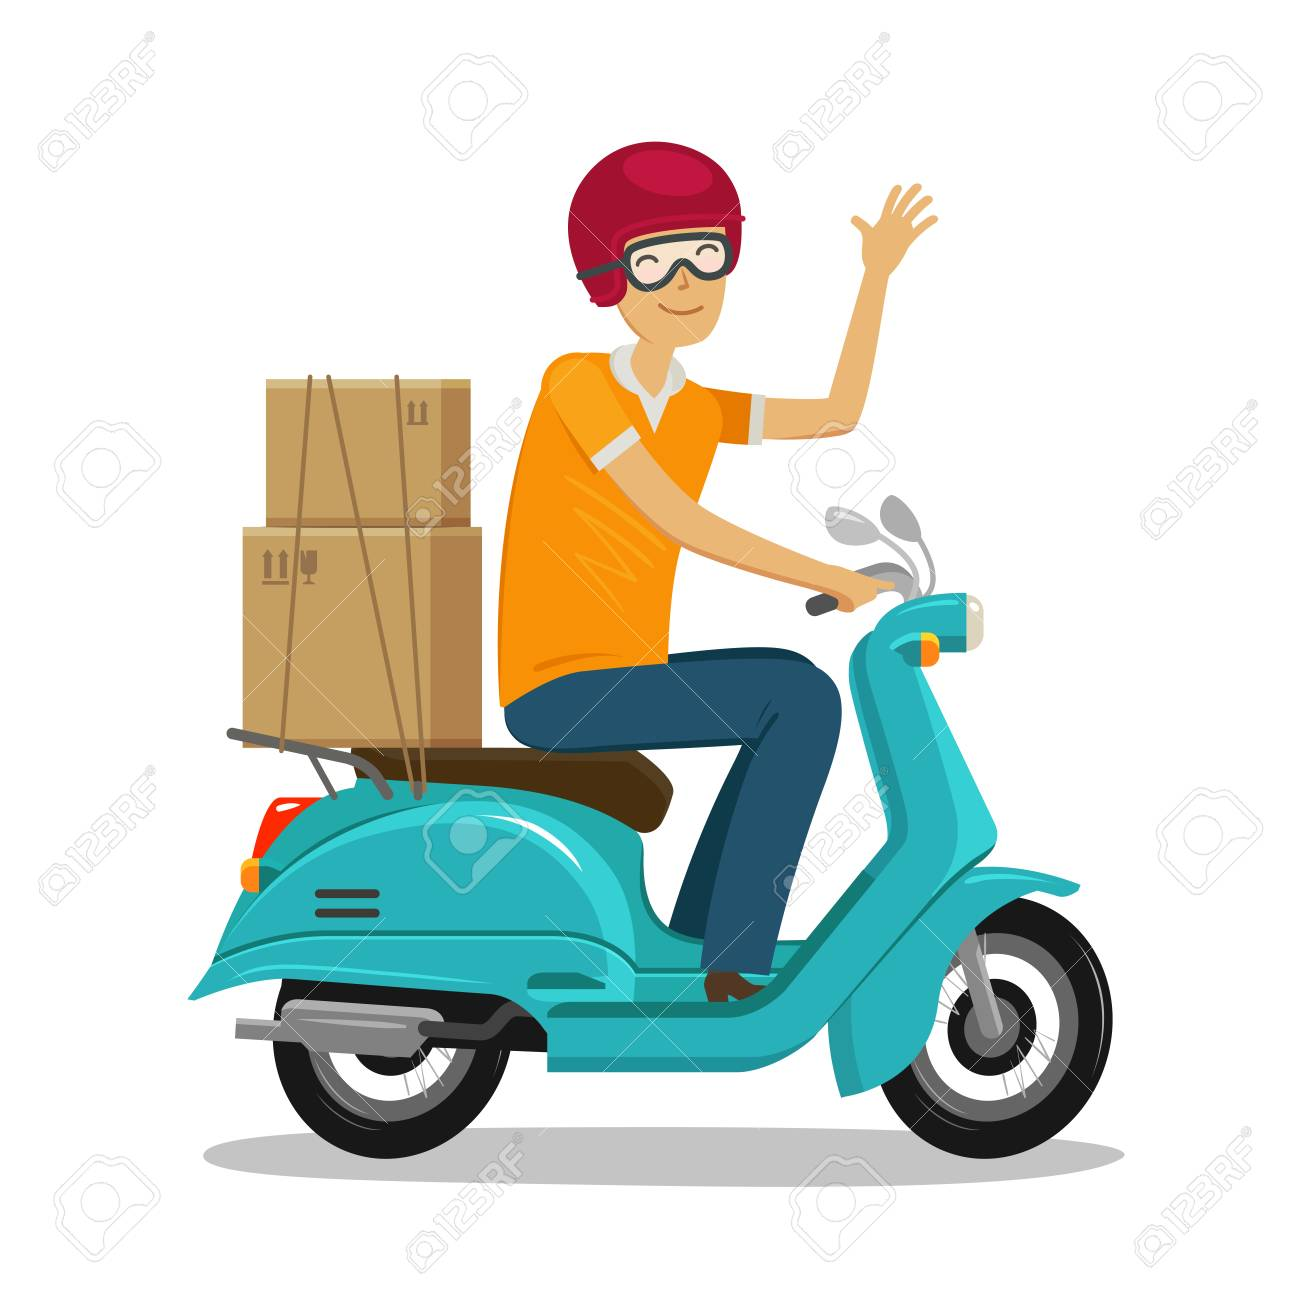 Express delivery, fast shipment concept. Happy courier rides scooter or moped cartoon vector illustration. - 96898905